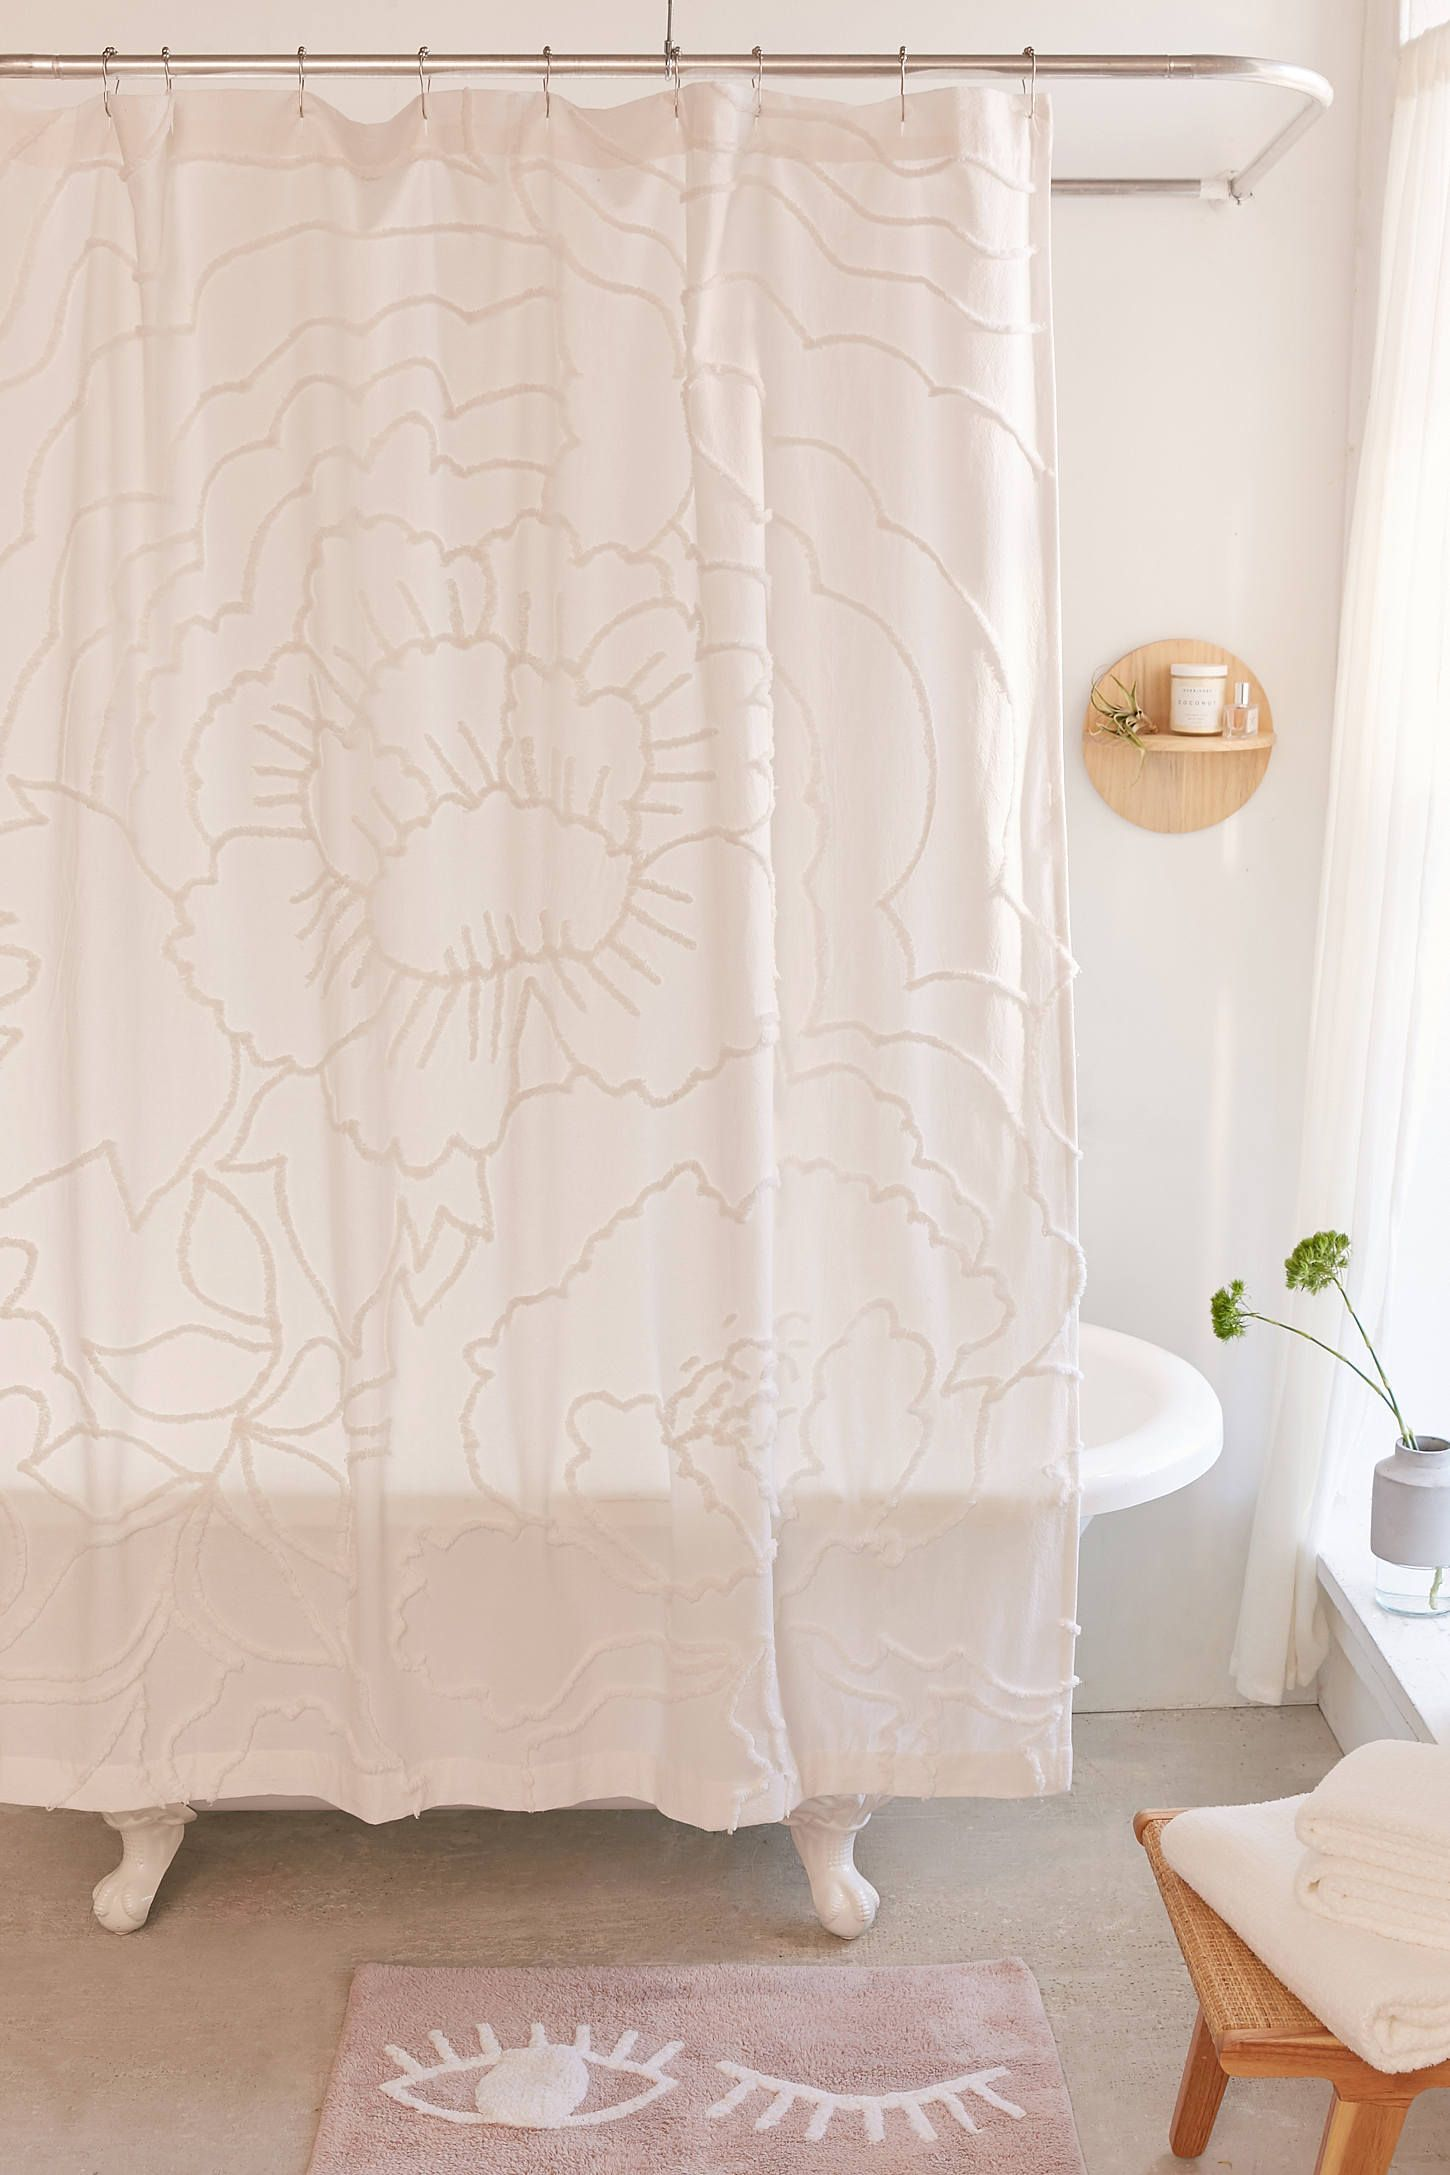 Margot Tufted Floral Shower Curtain Floral Shower Curtains